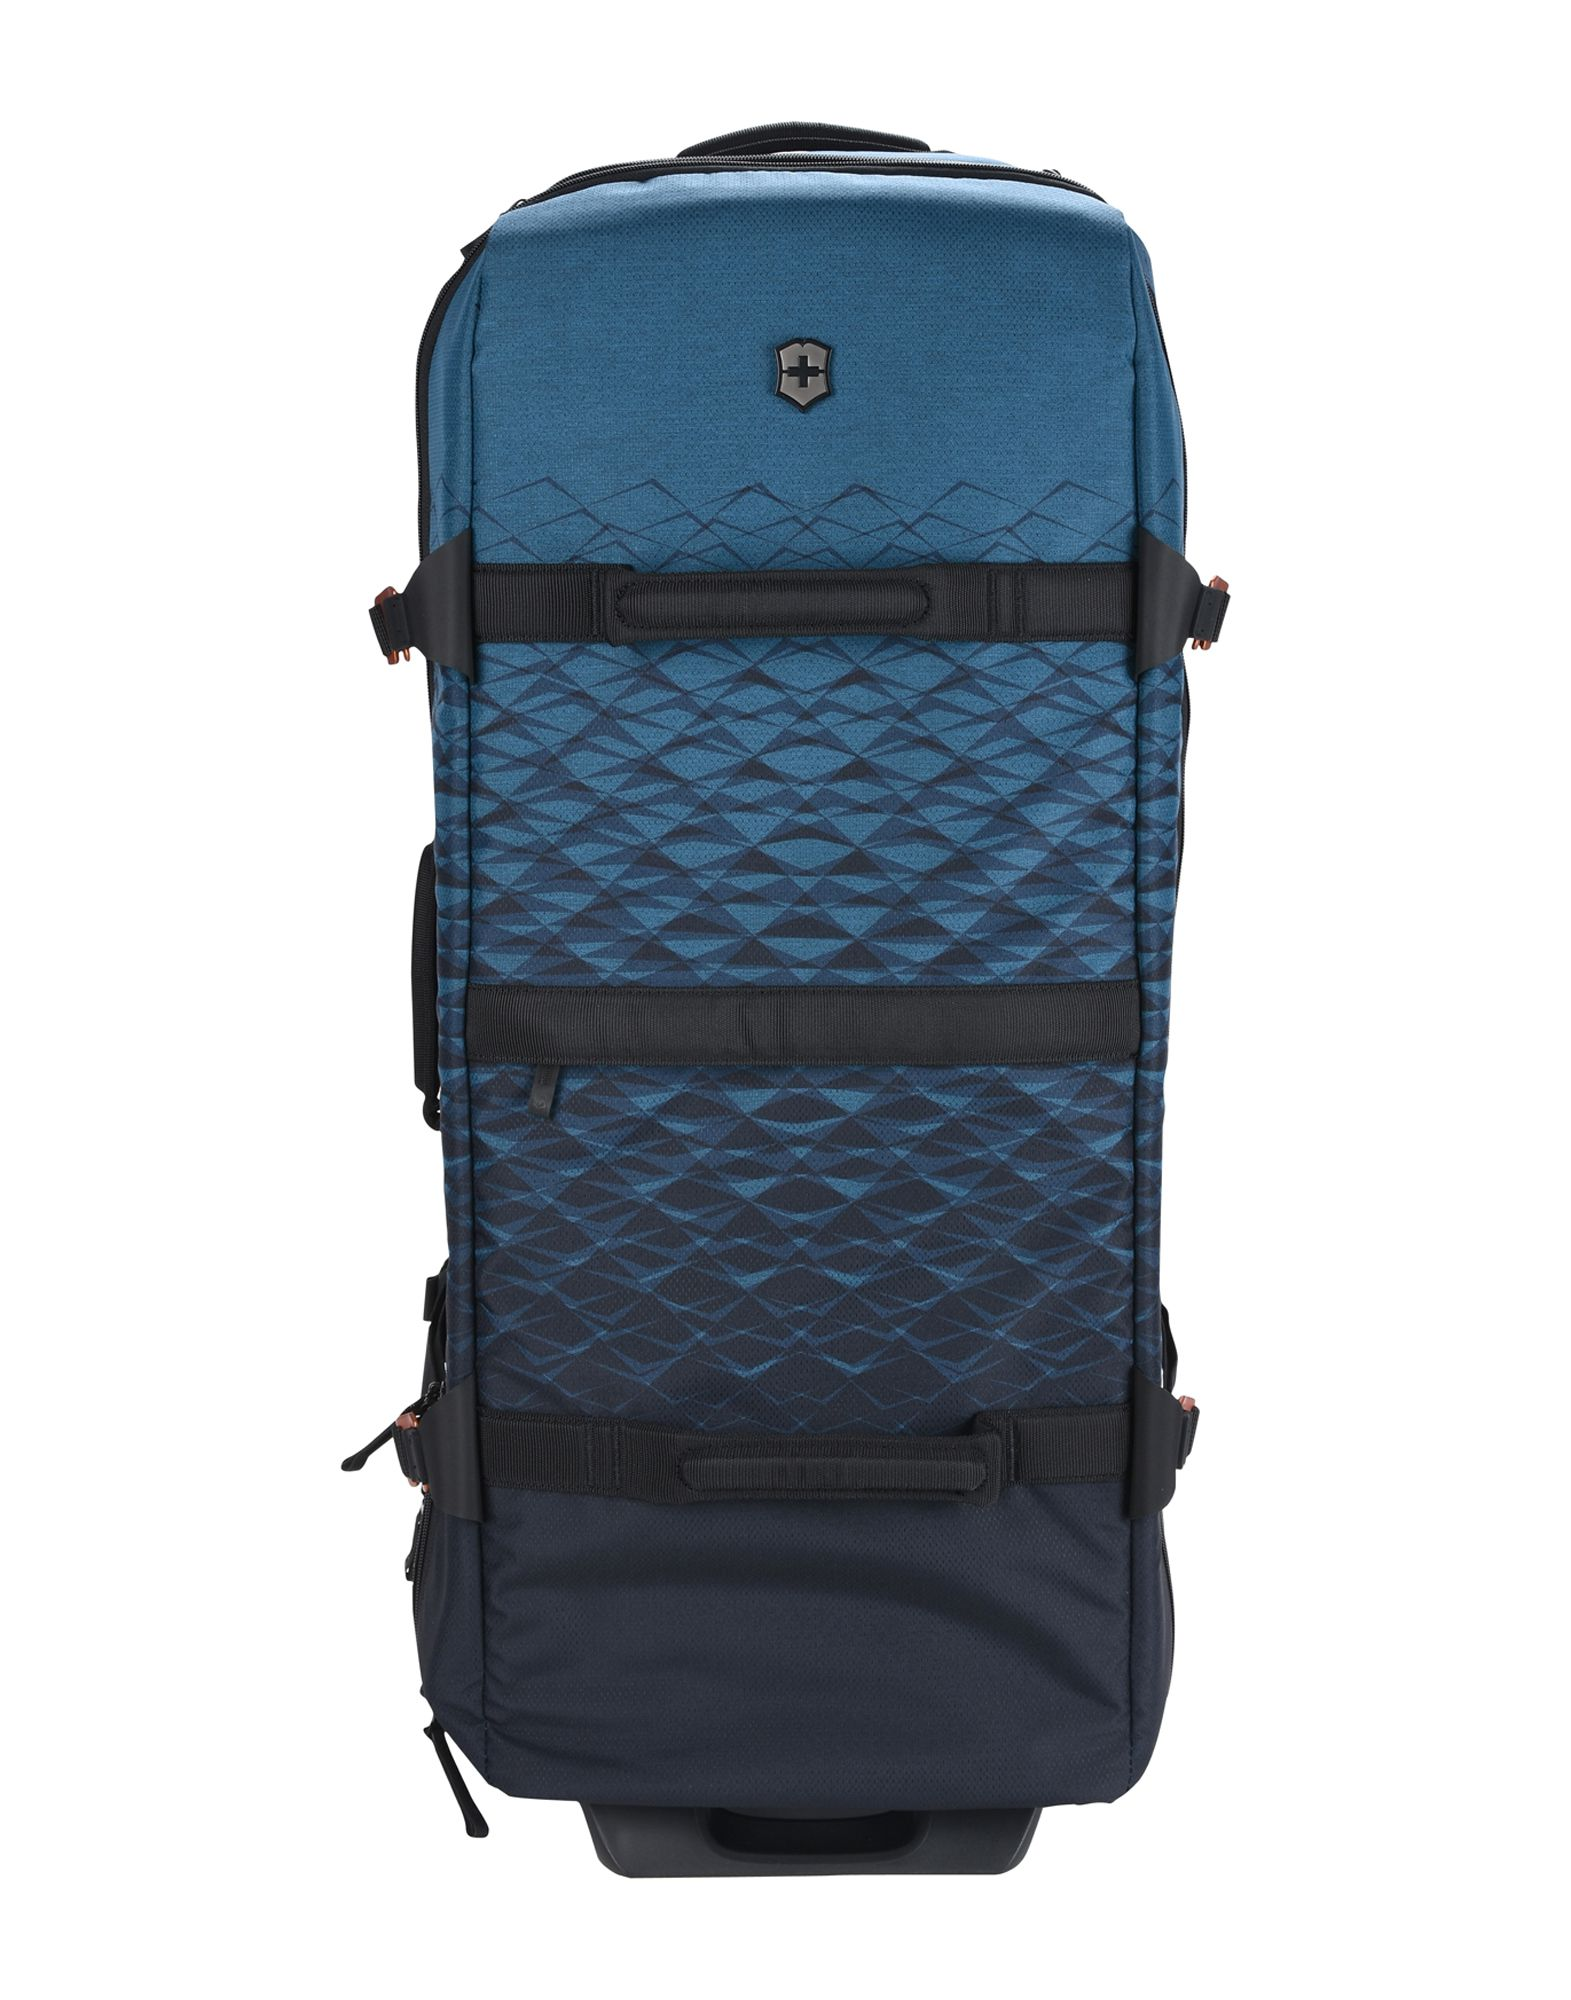 Trolley E Valigie Victorinox Vx Touring 2-Wheel Expandable Extra-Large Duffel - Uomo - Acquista online su